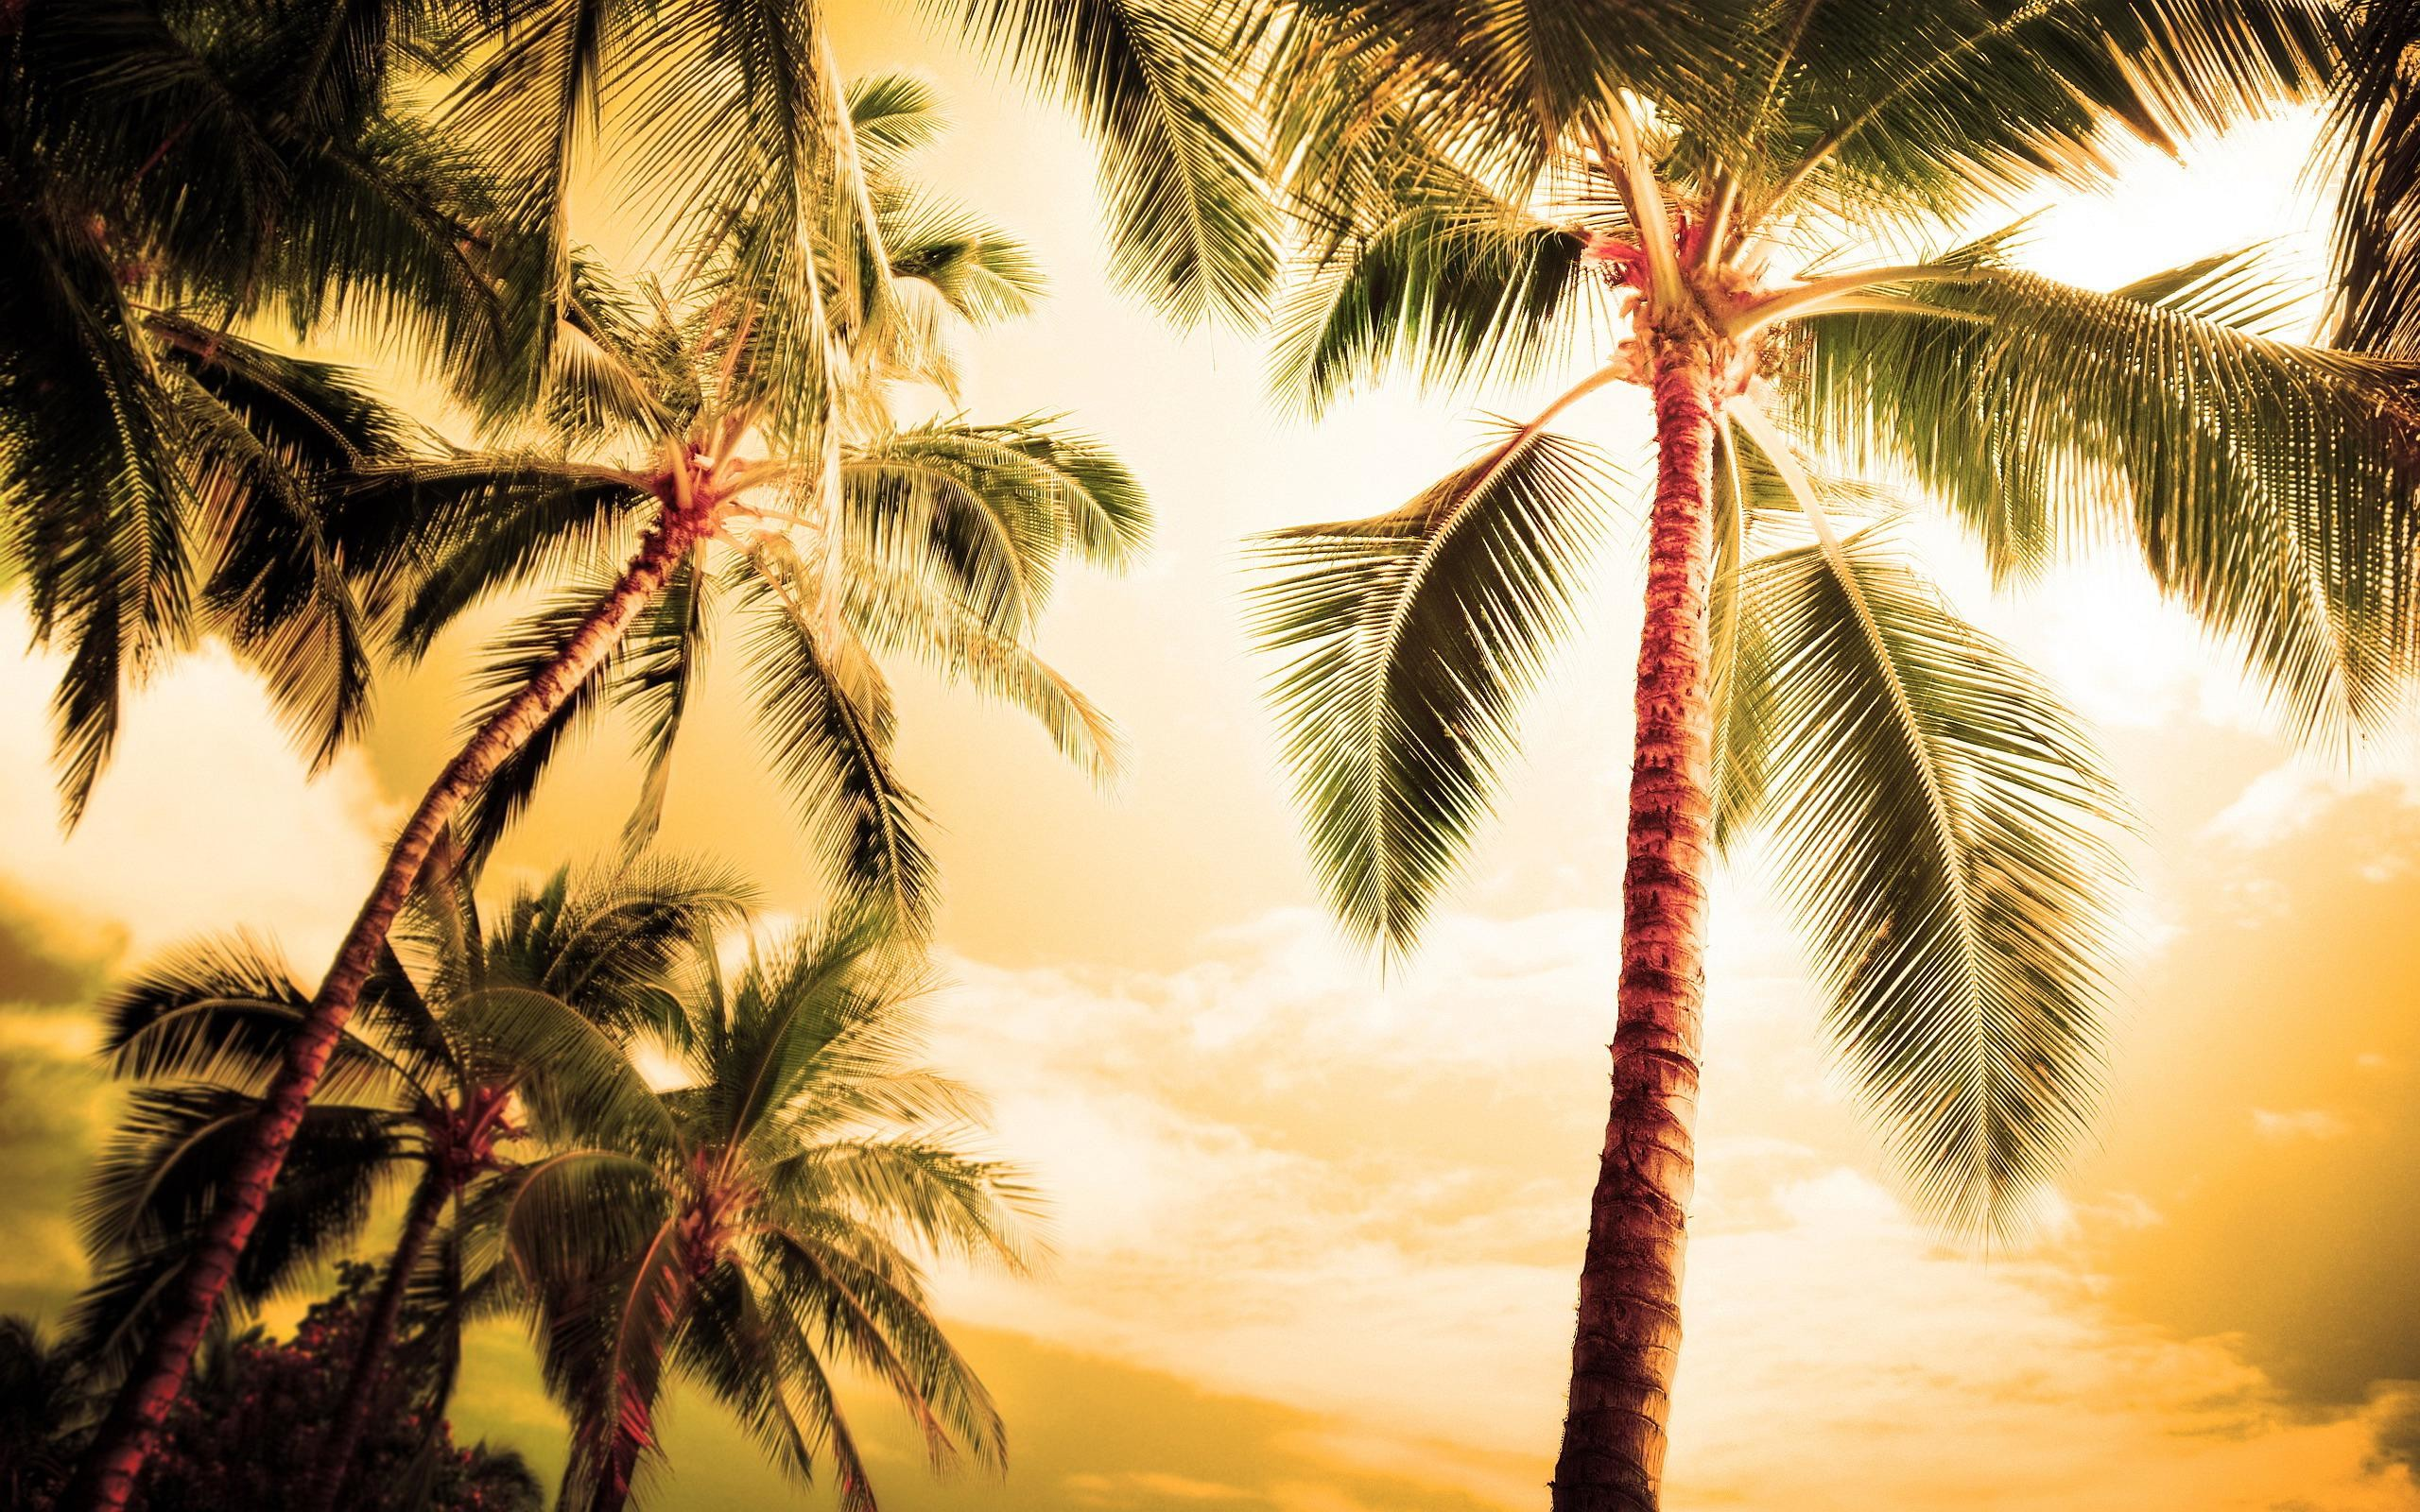 California Palm Trees Wallpaper (48+ images)